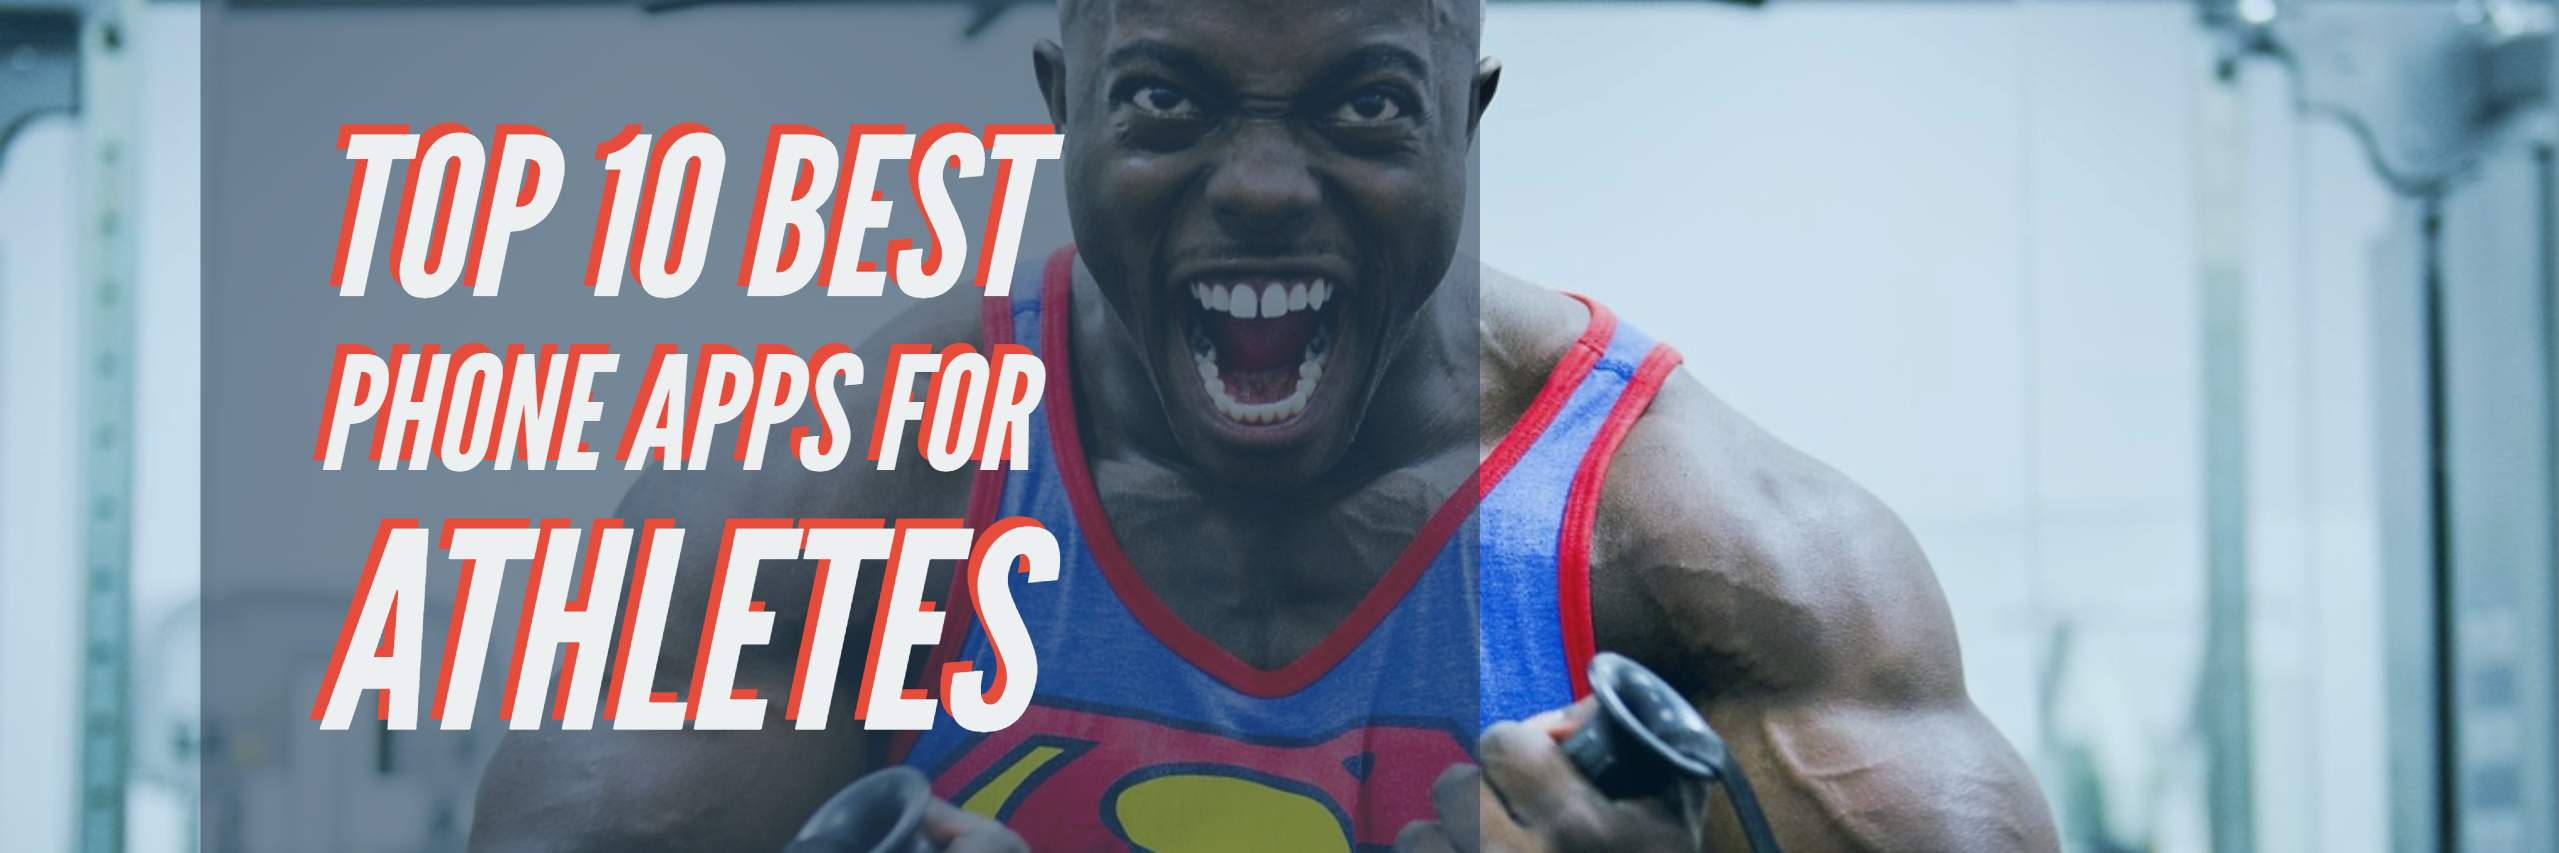 Top 10 Best Phone Apps for Athletes